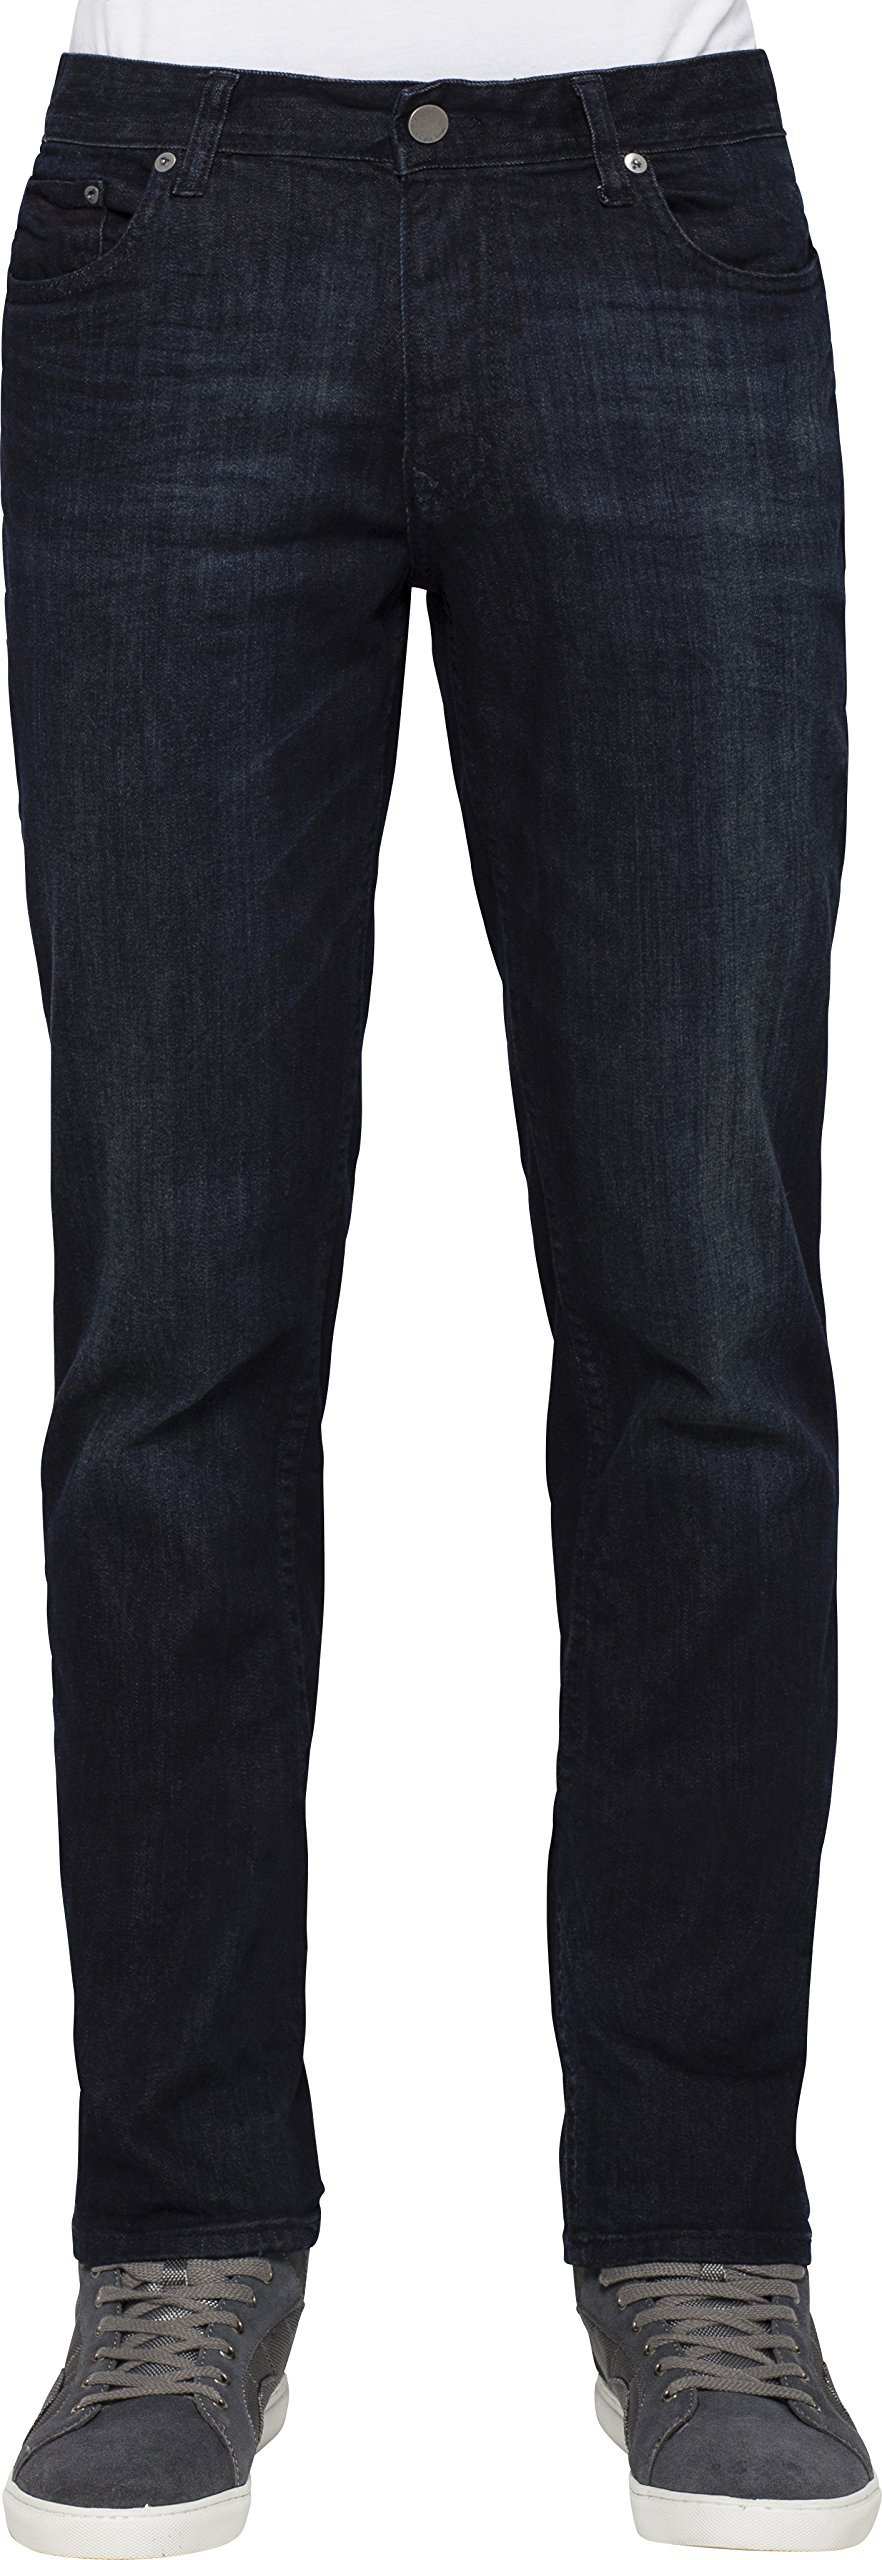 Calvin Klein Jeans Men's Slim Straight Leg Jean In Osaka, Osaka Blue, 32x30 by Calvin Klein